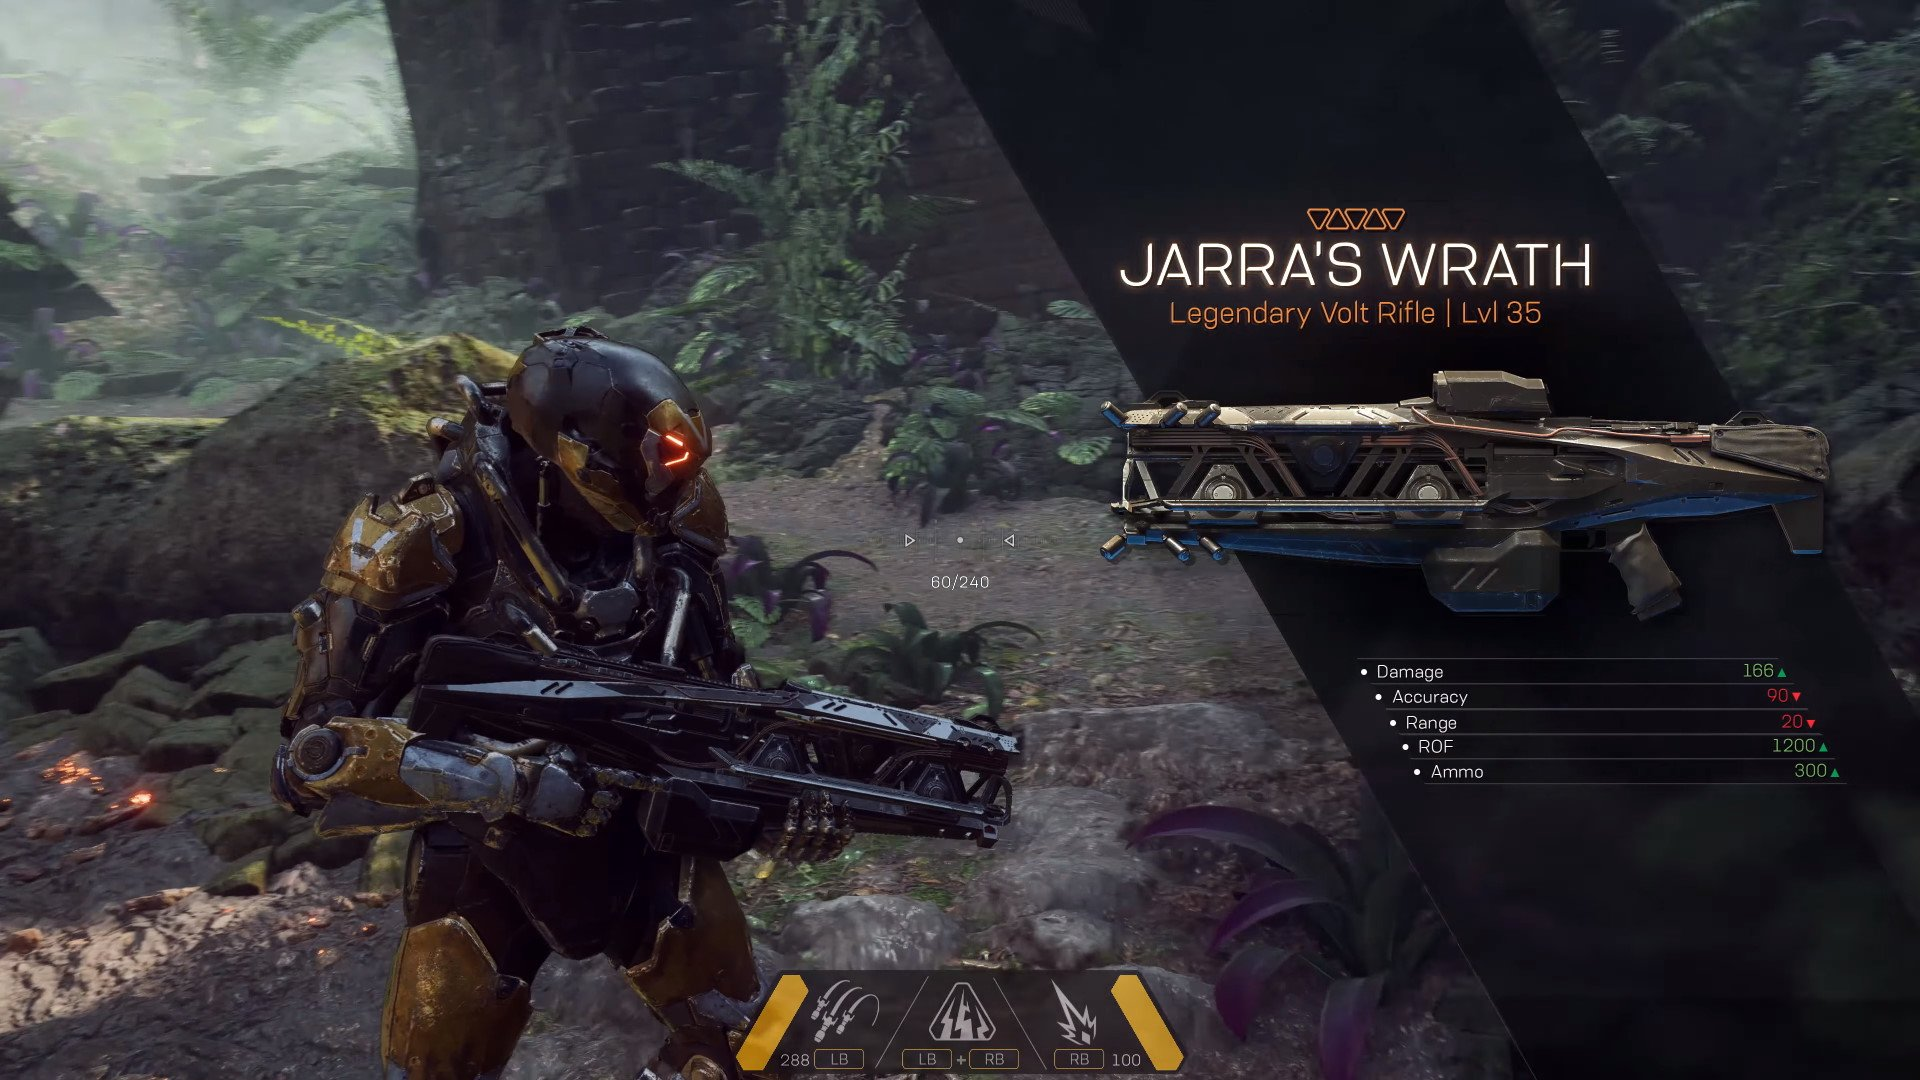 How to get Weapon Parts in Anthem